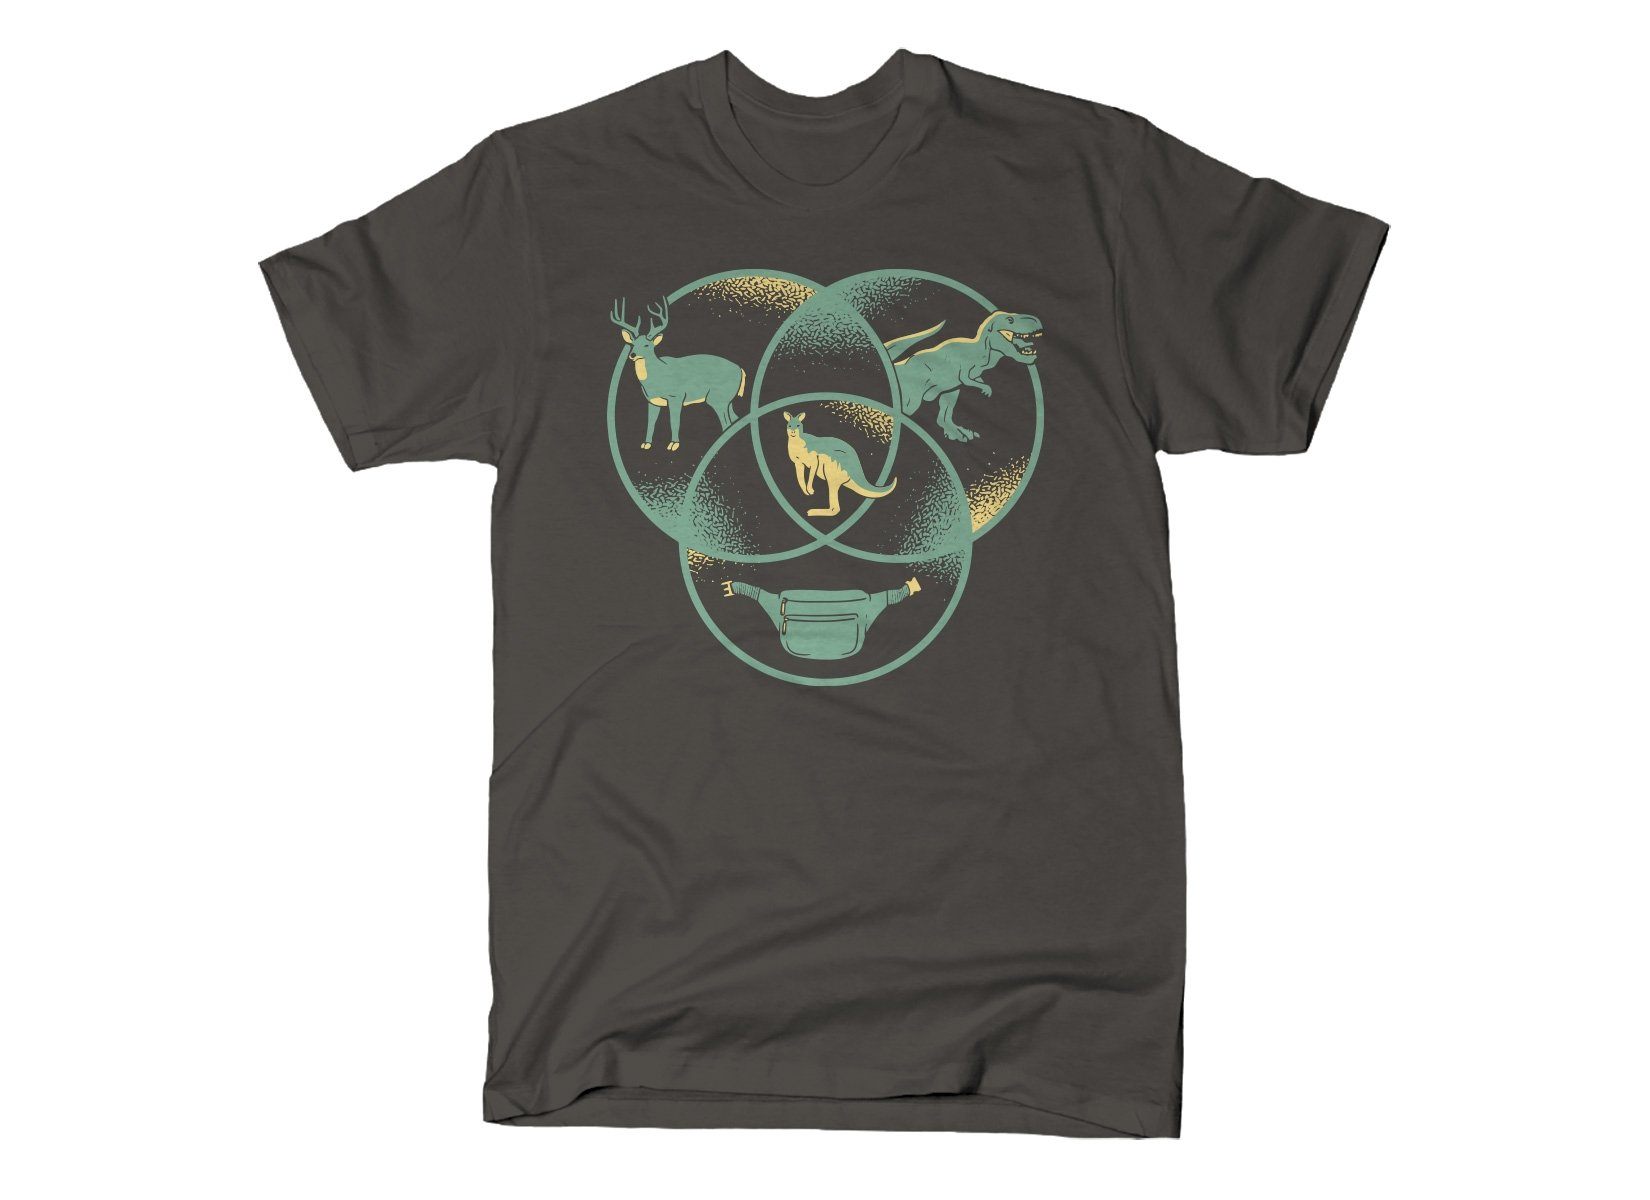 Kangaroo Venn Diagram on Mens T-Shirt